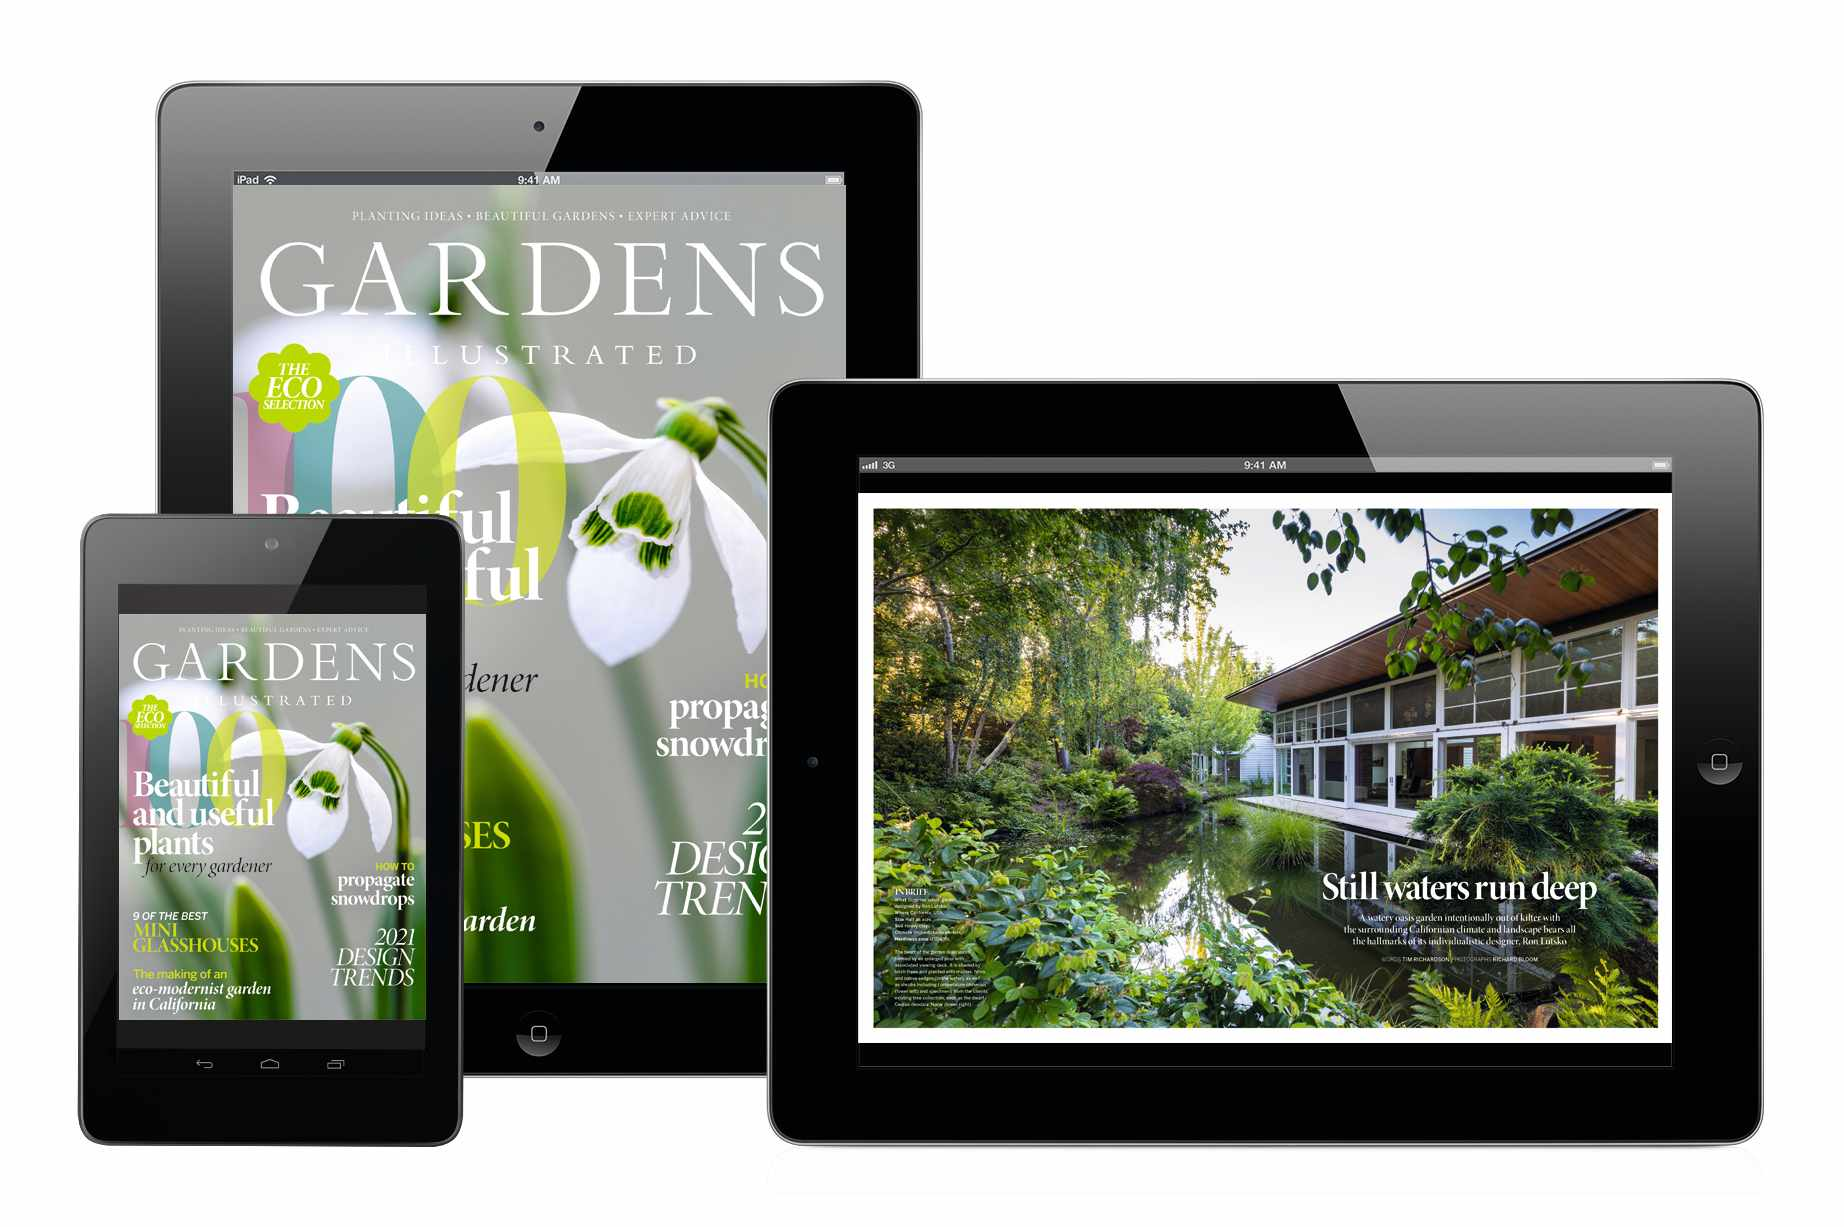 January's Gardens Illustrated